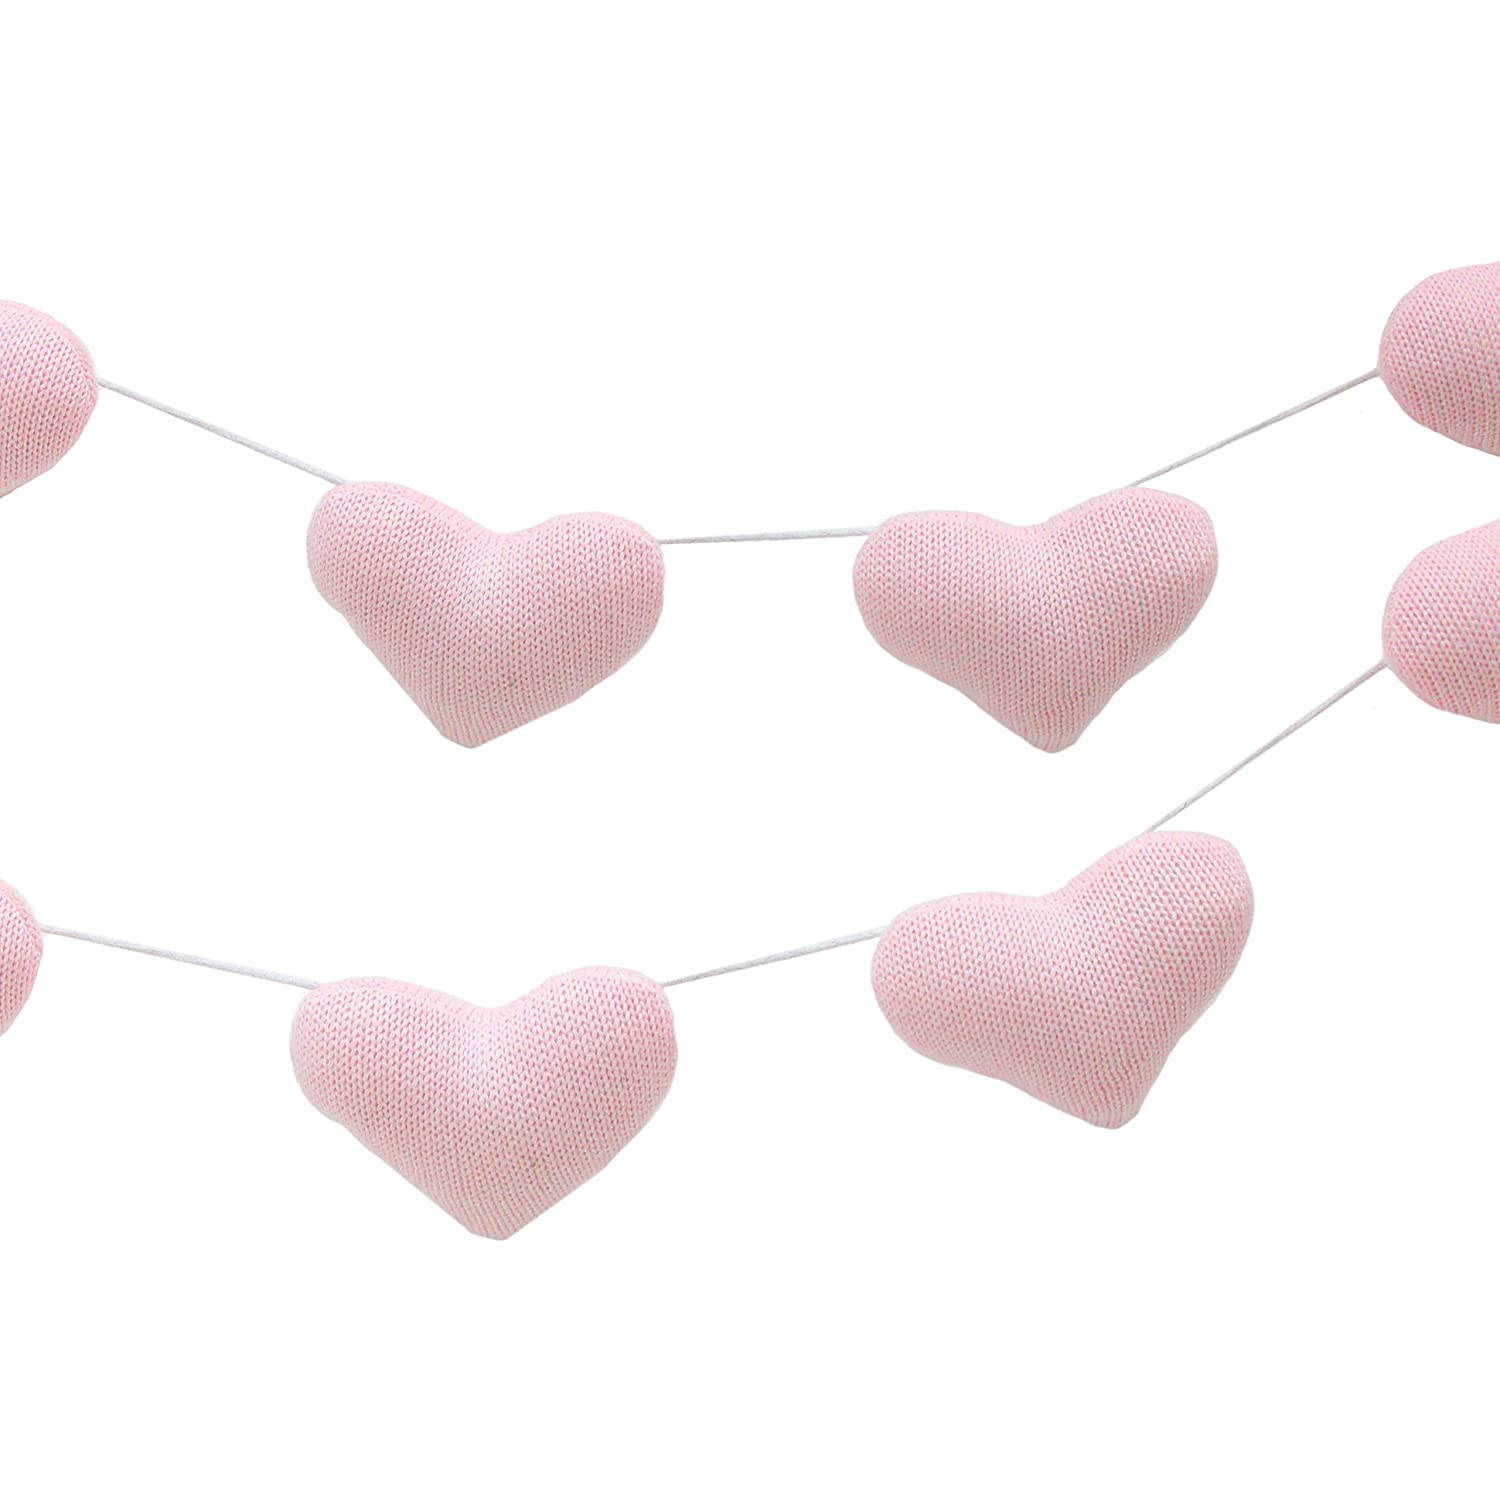 Living Textiles Knitted Garlands (6pc White Stars). Hanging Accessory for Baby Boy or Girl Nursery. 521103